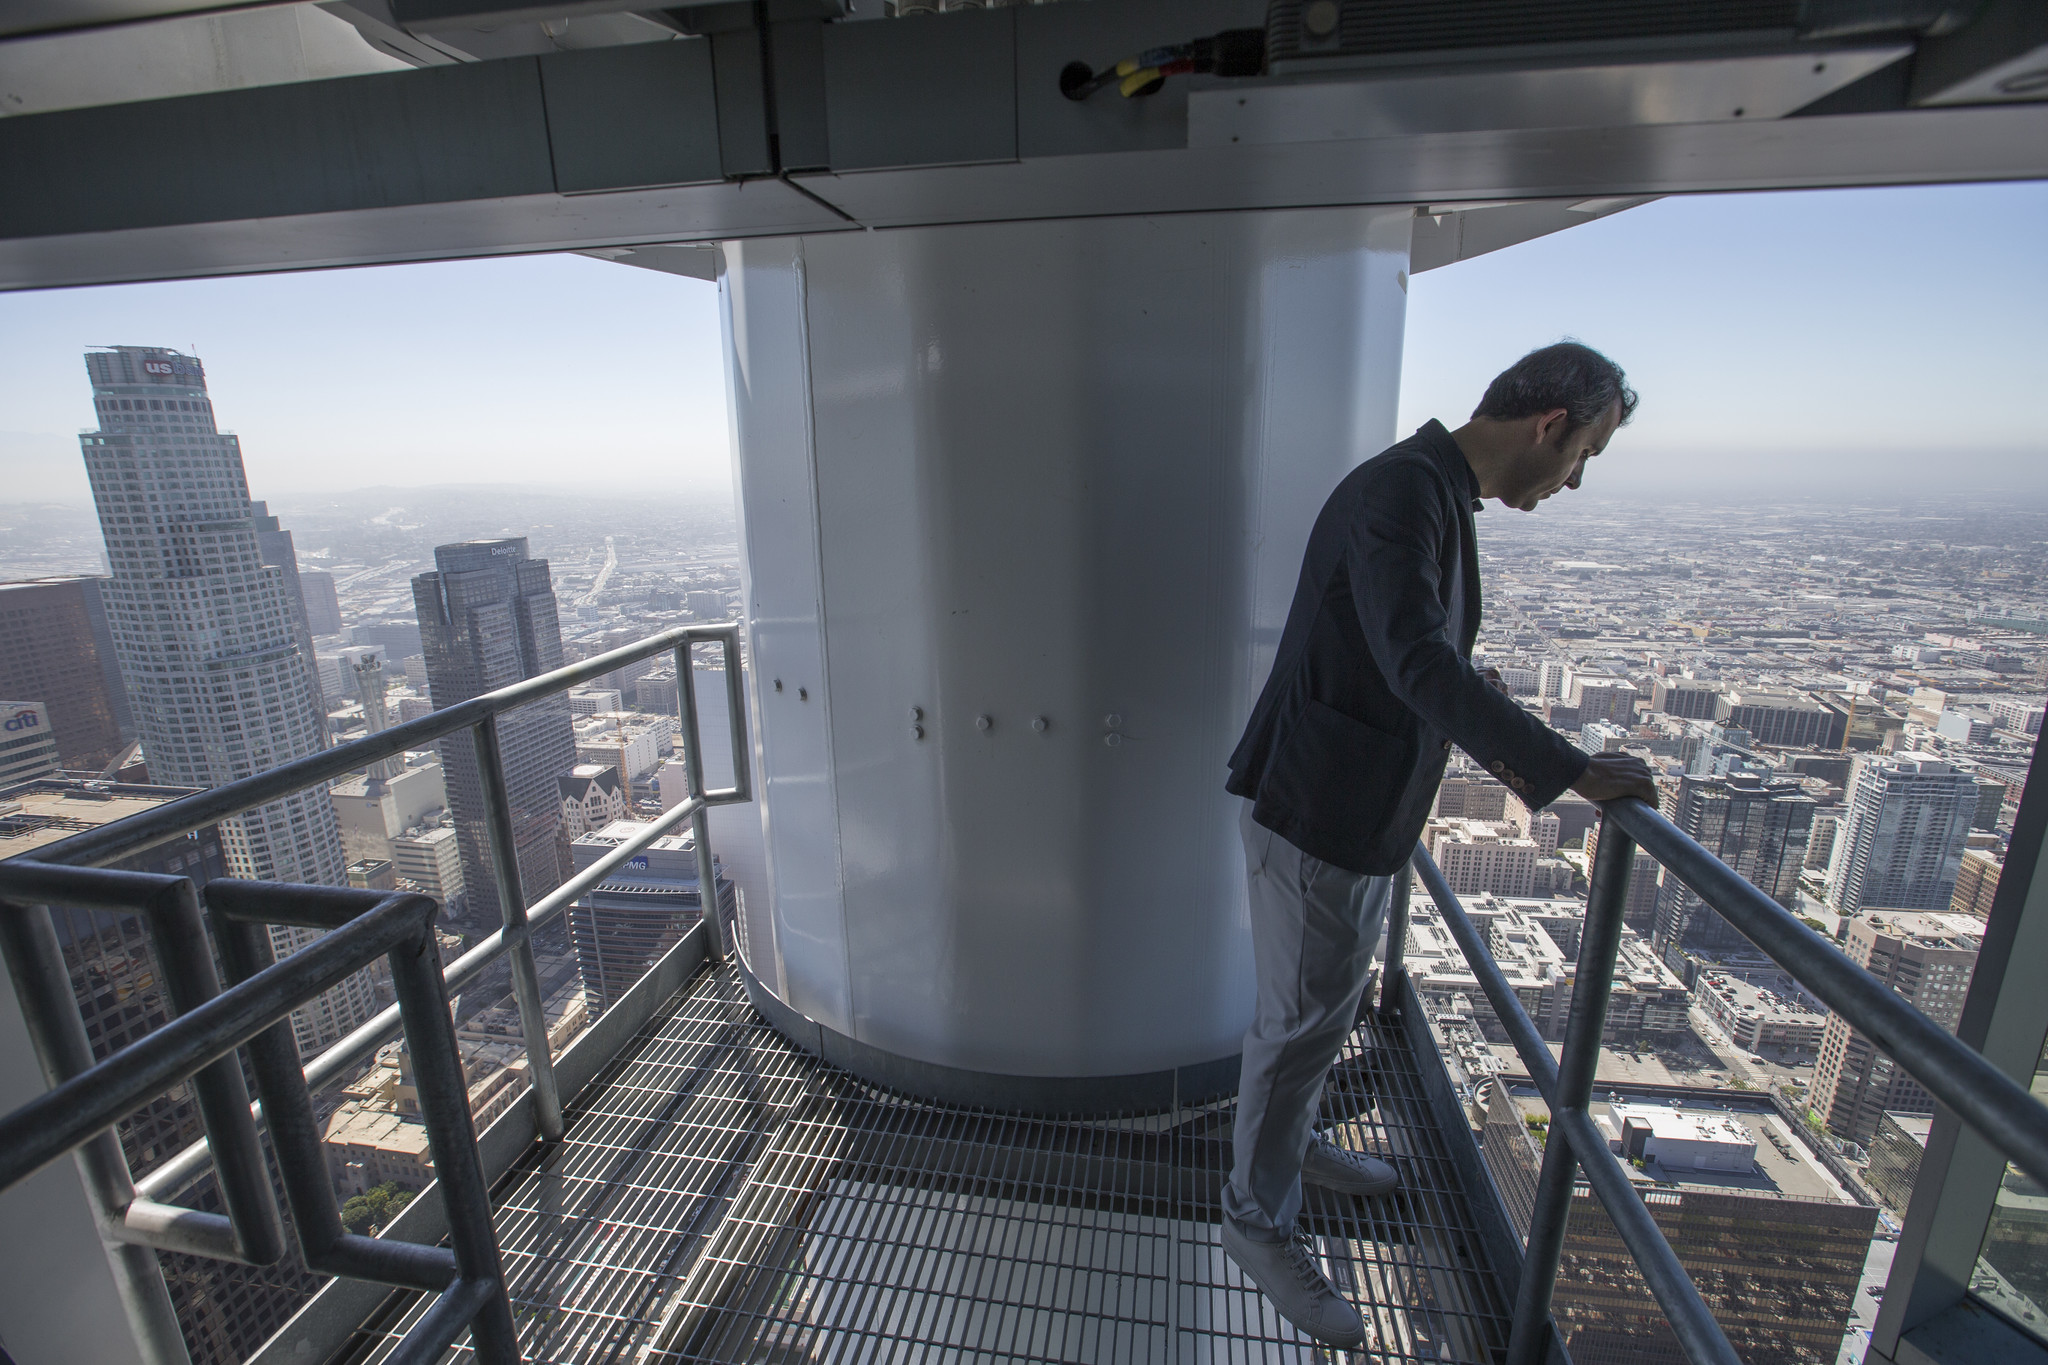 Brad Gwinn, StandardVision chief operations officer, looks out from inside the sail atop of the InterContinental Los Angeles bar on the 73rd floor of the Wilshire Grand Center.